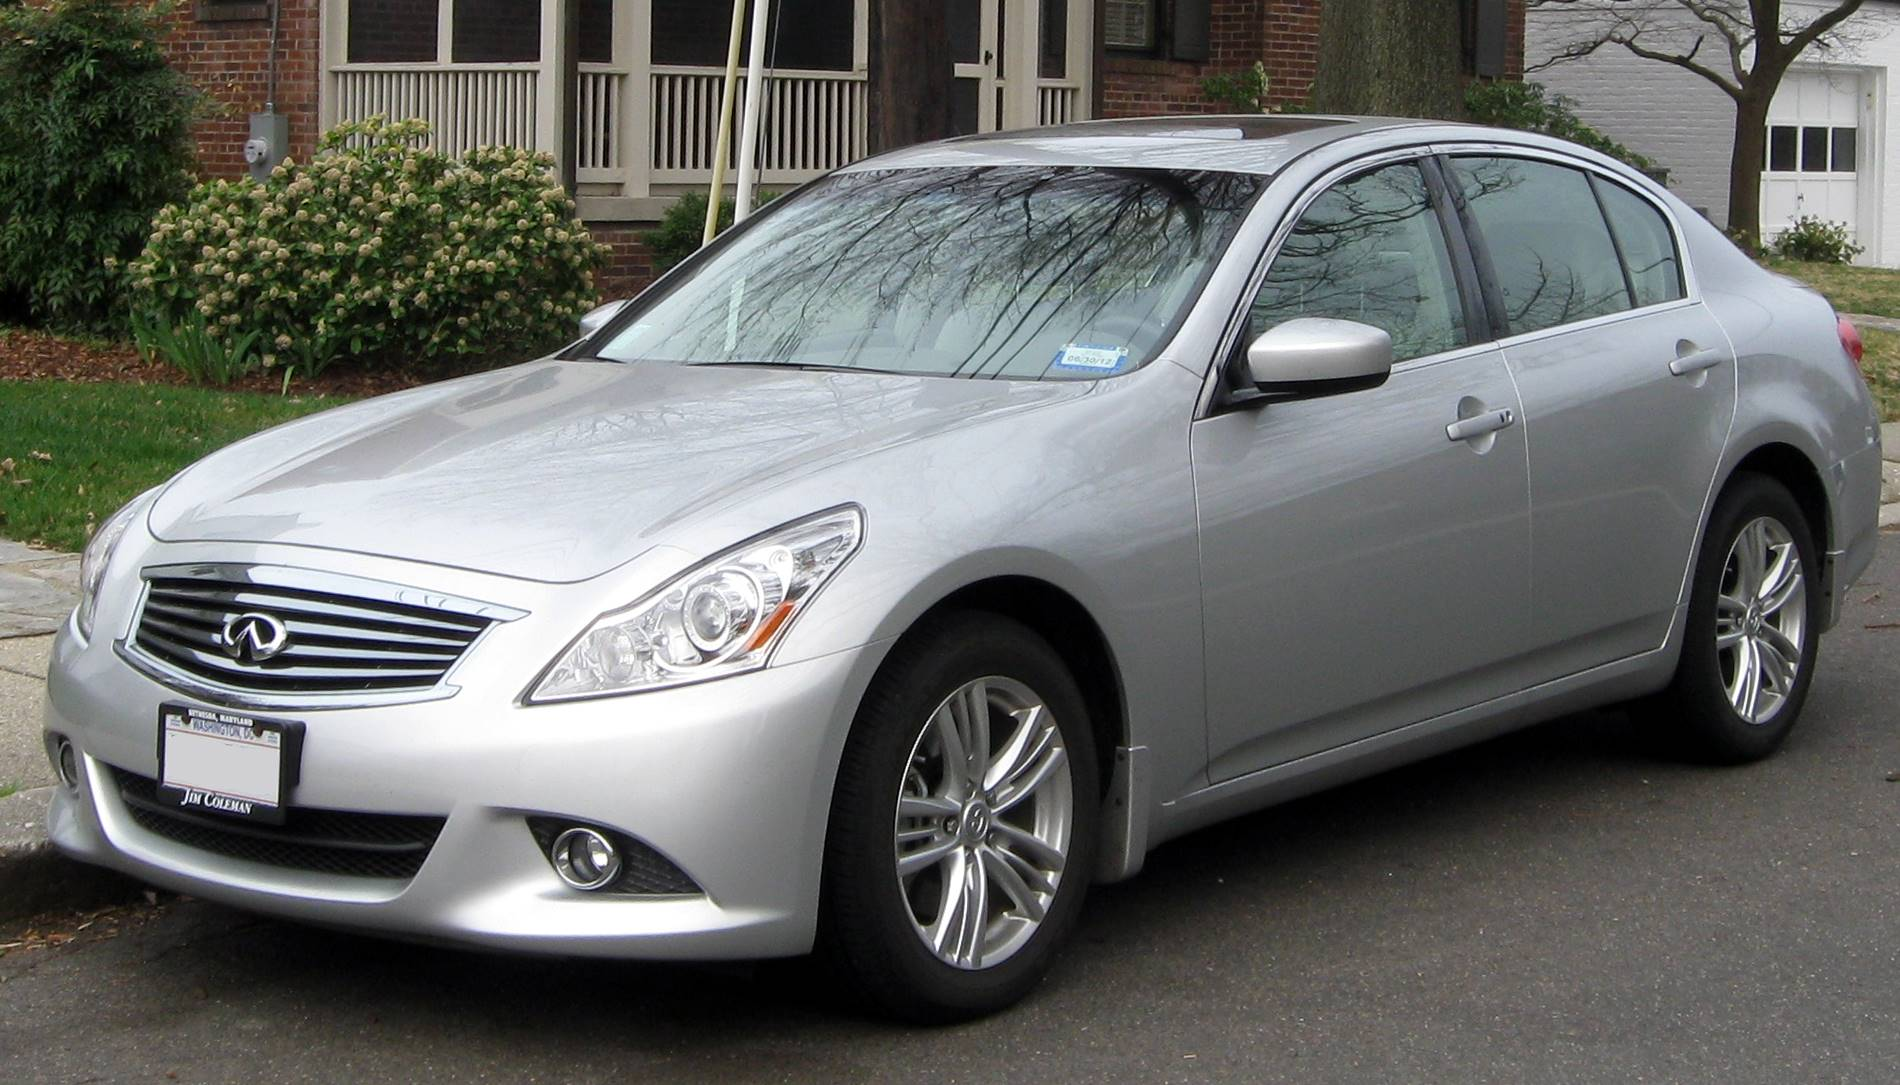 2010 infiniti g37 sedan x sedan 3 7l v6 awd auto. Black Bedroom Furniture Sets. Home Design Ideas